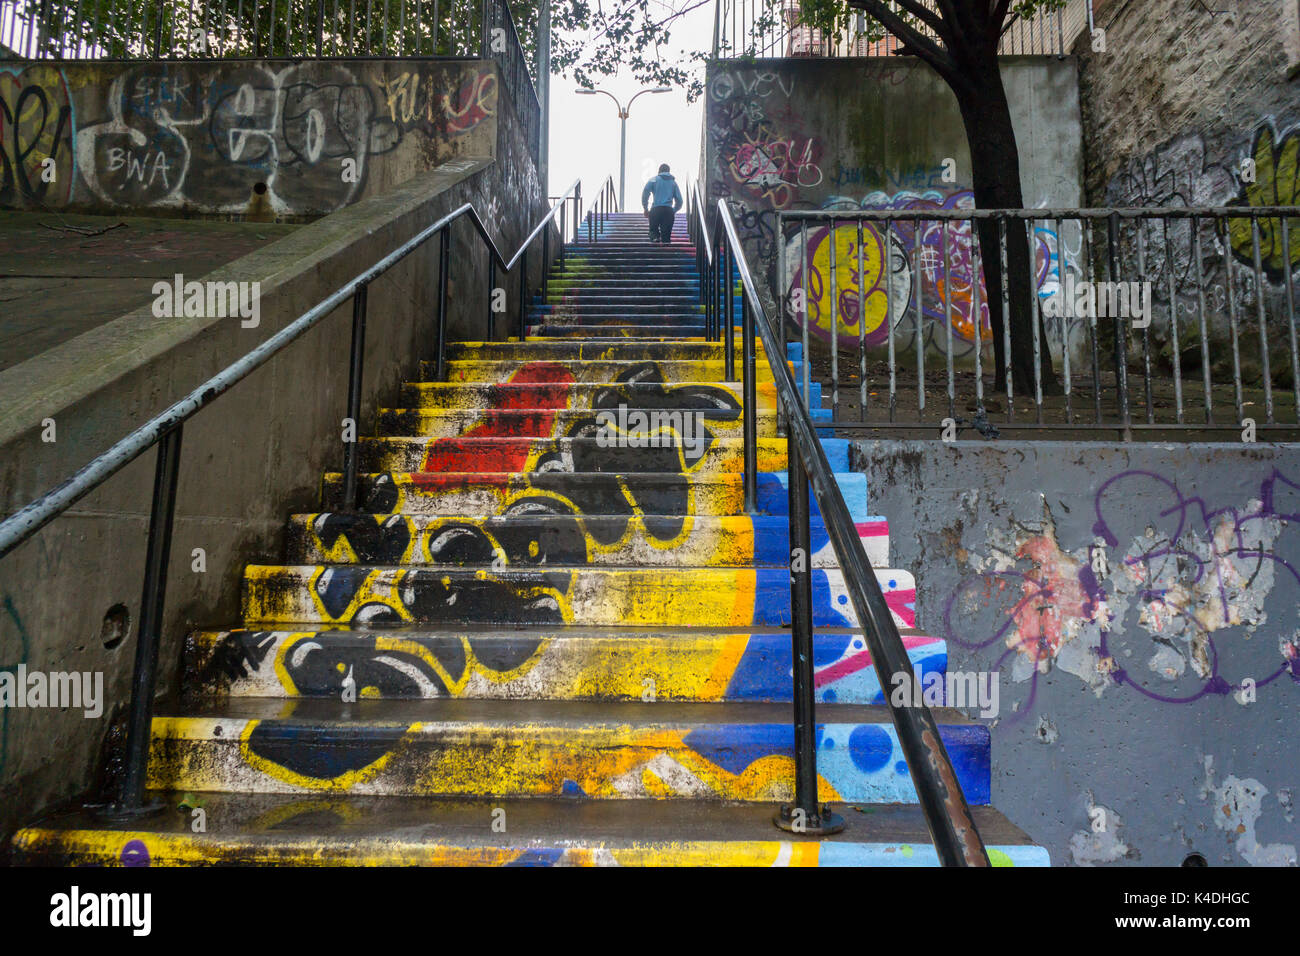 A decorated step street in the bronx borough of new york on sunday september 3 2017 due to the hilly nature of upper manhattan and western bronx their